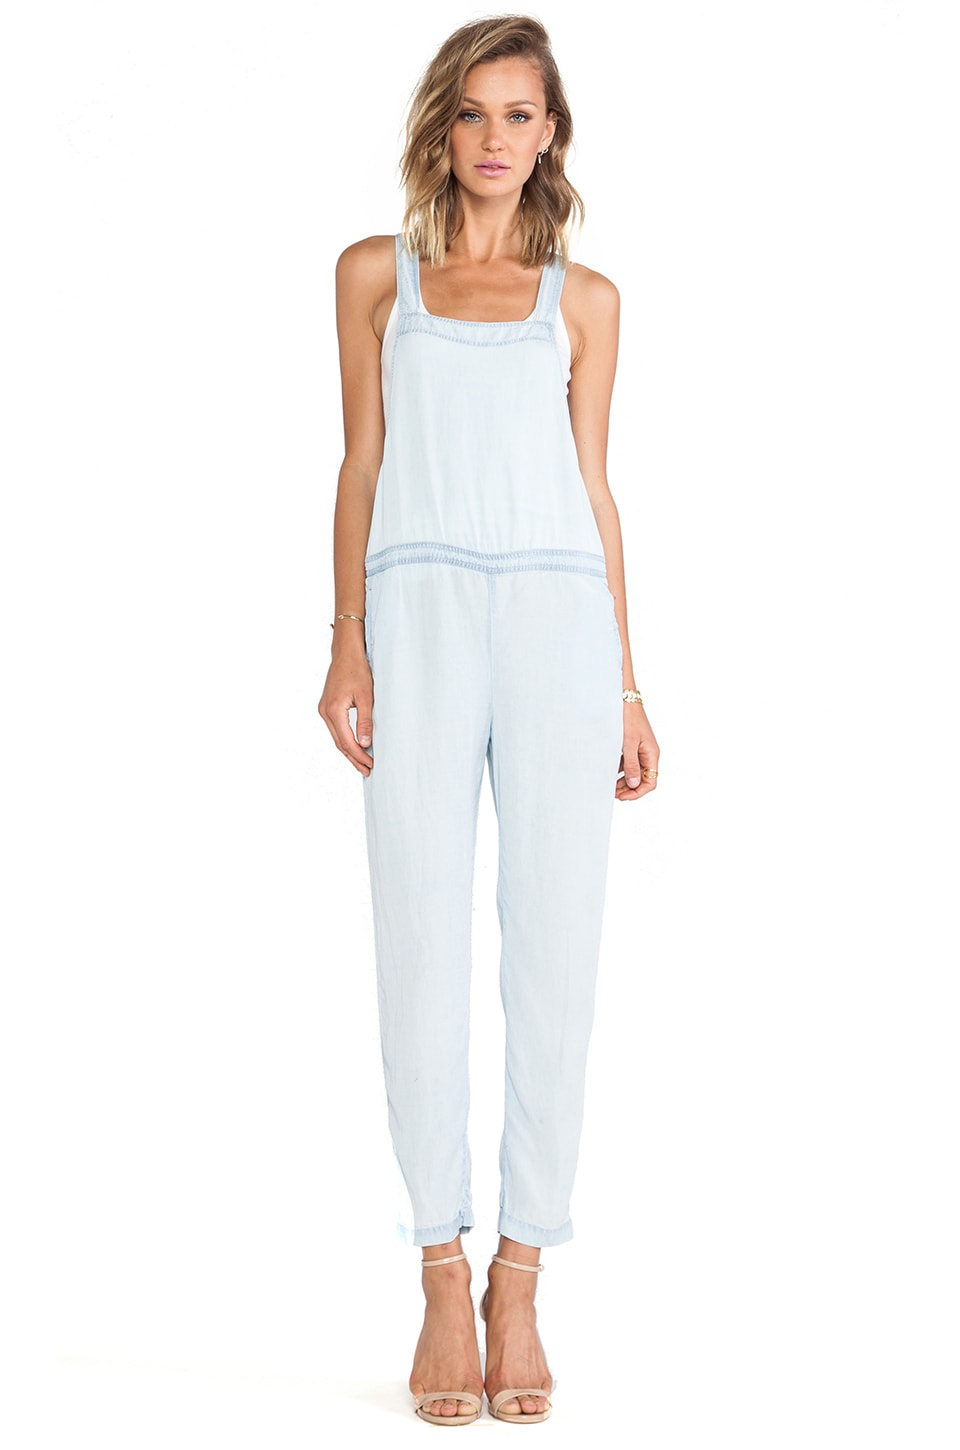 SAM&LAVI Whitney Jumpsuit in Indigo